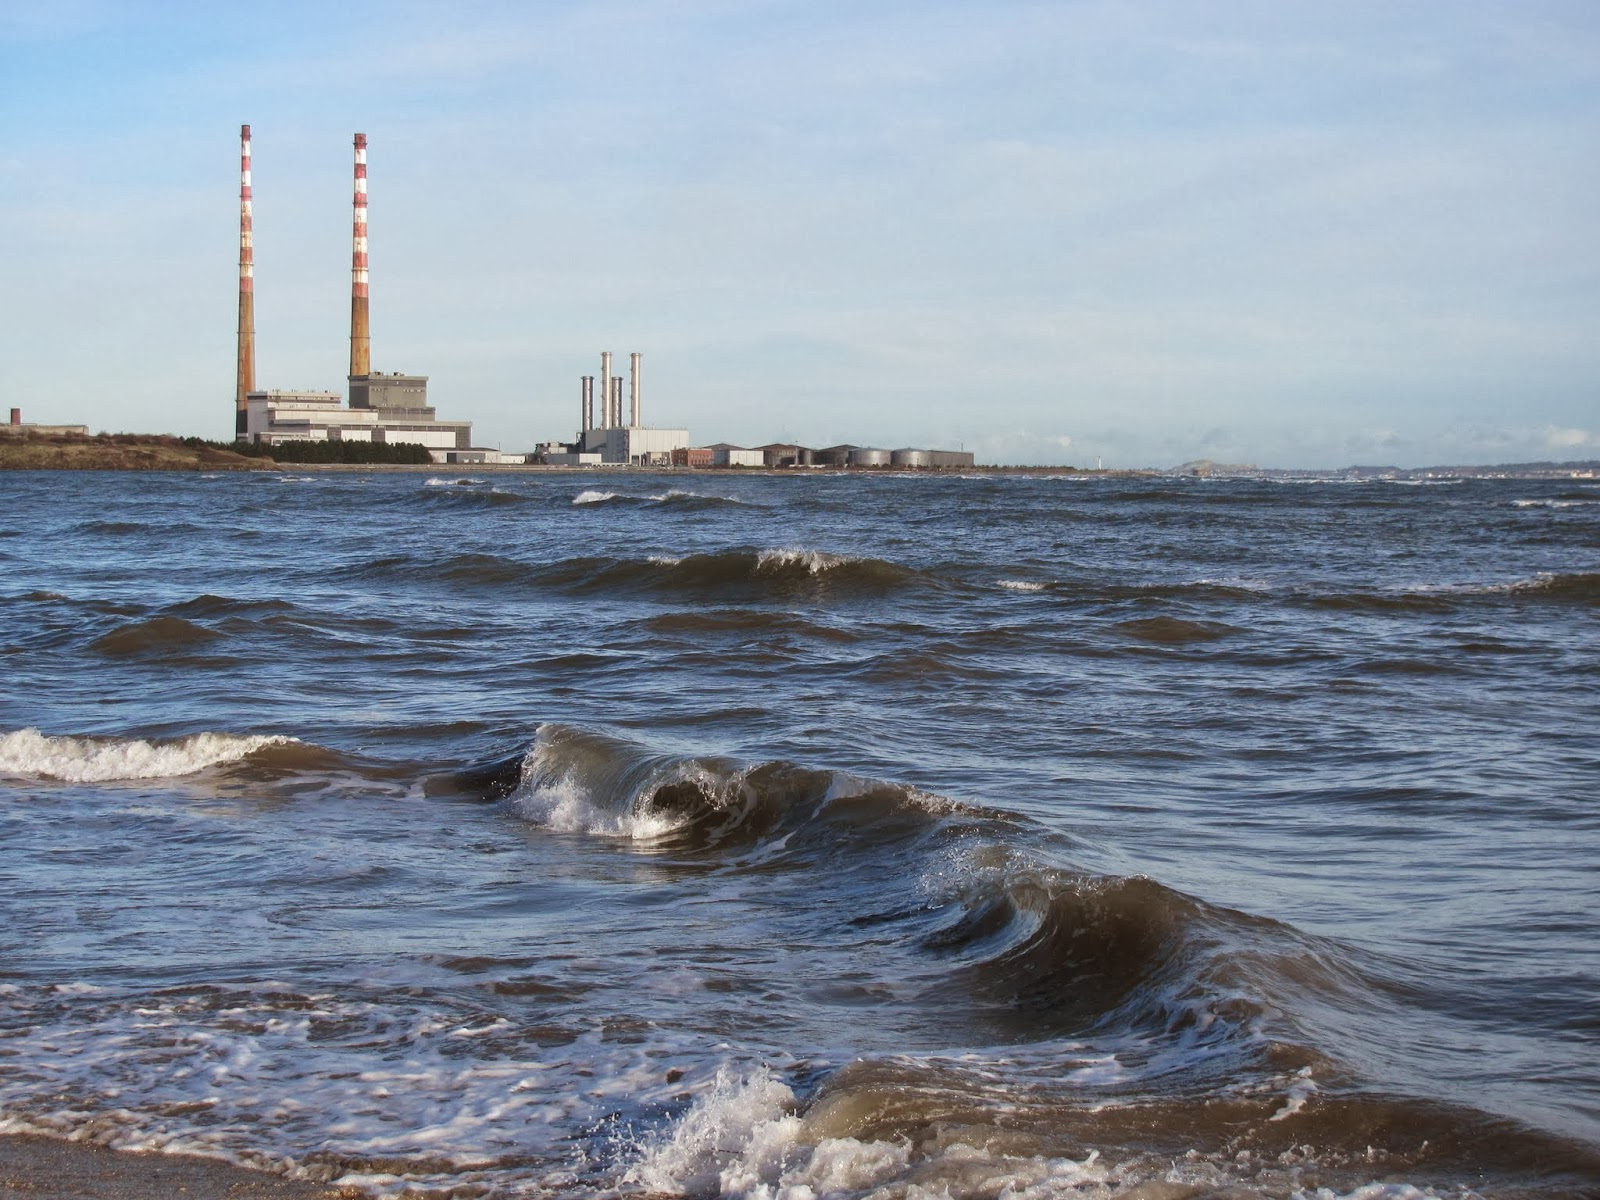 Dublin smokestacks photographed from Sandymount Strand